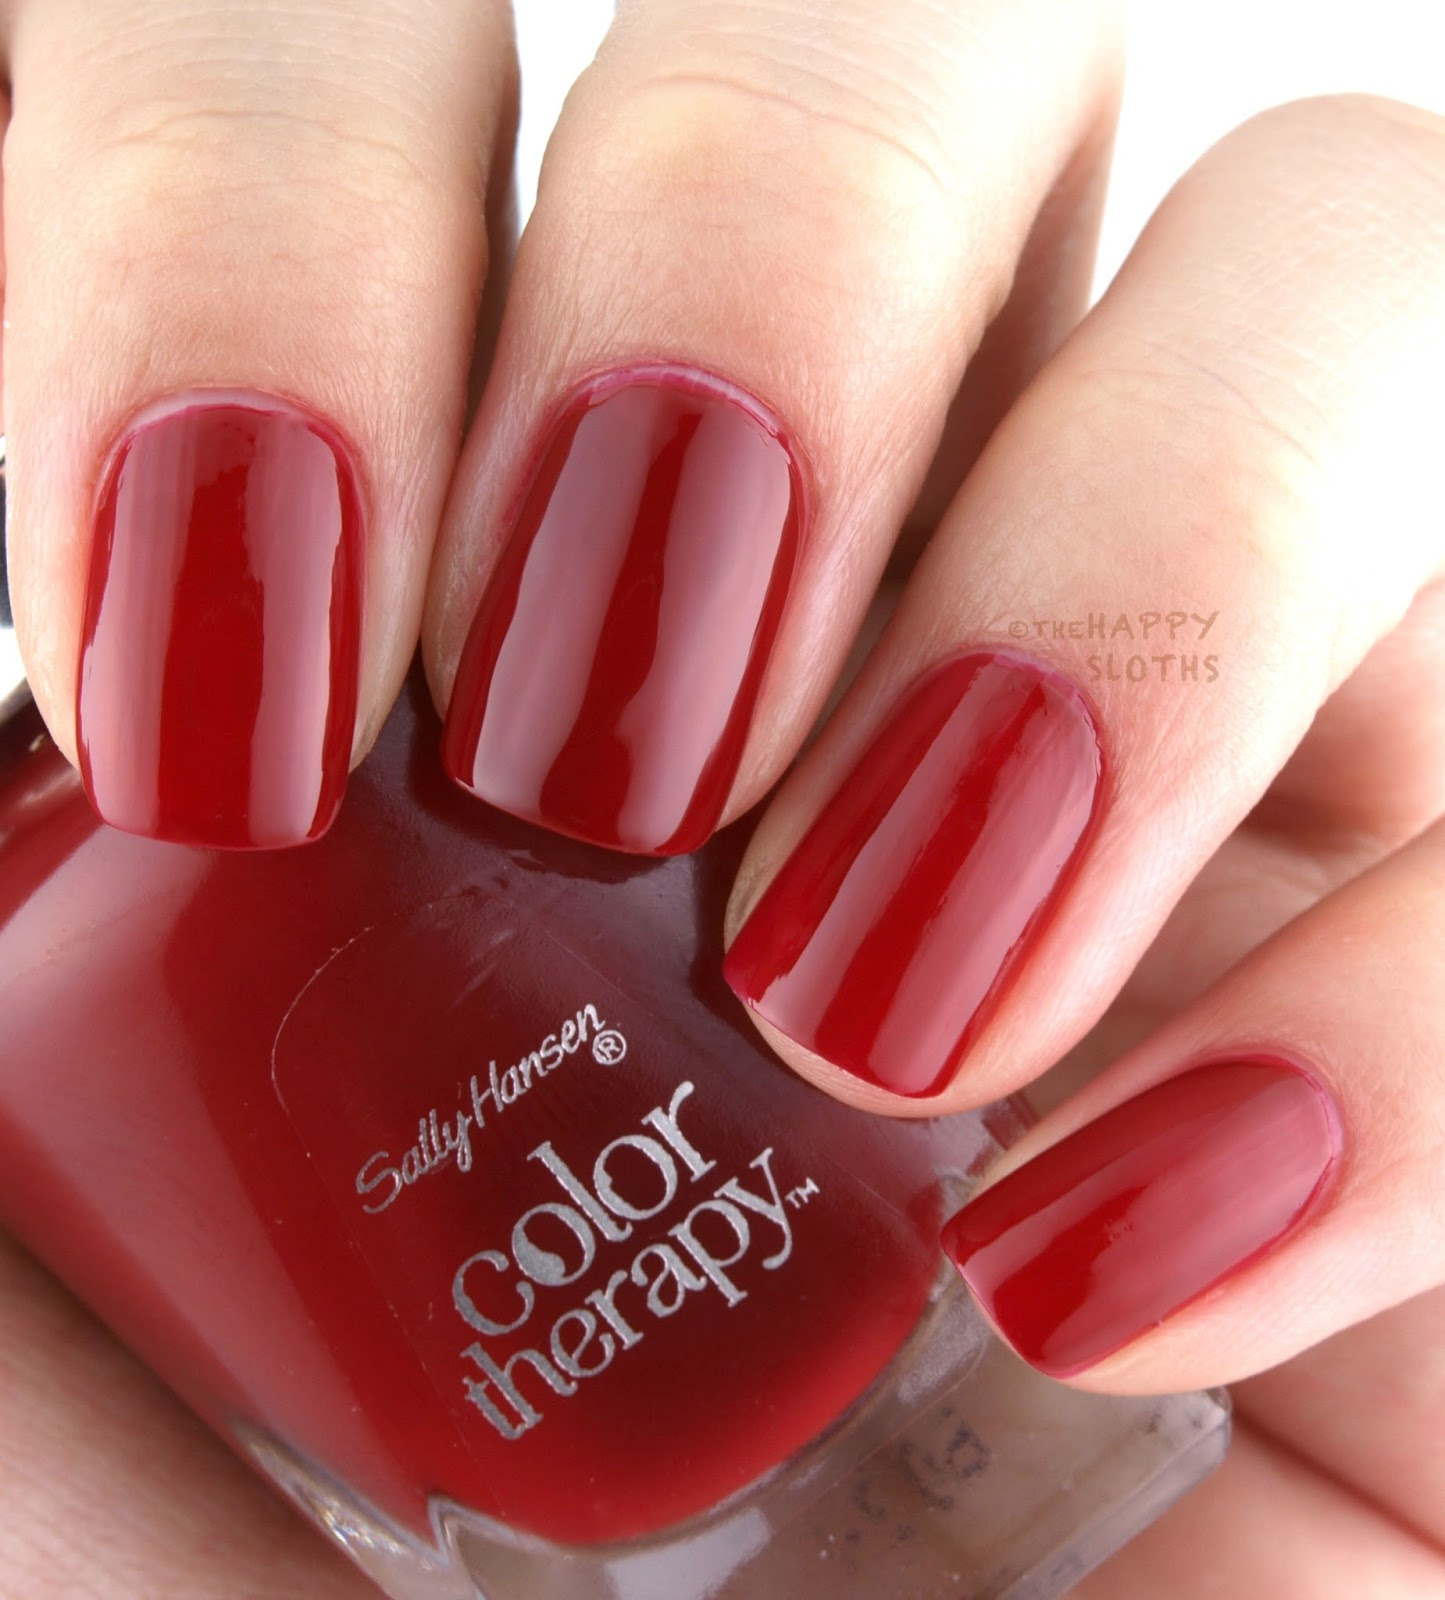 Colour therapy for sciatica - Colour Therapy For Success Sally Hansen Color Therapy Review Swatches Red Y To Glow Jpg